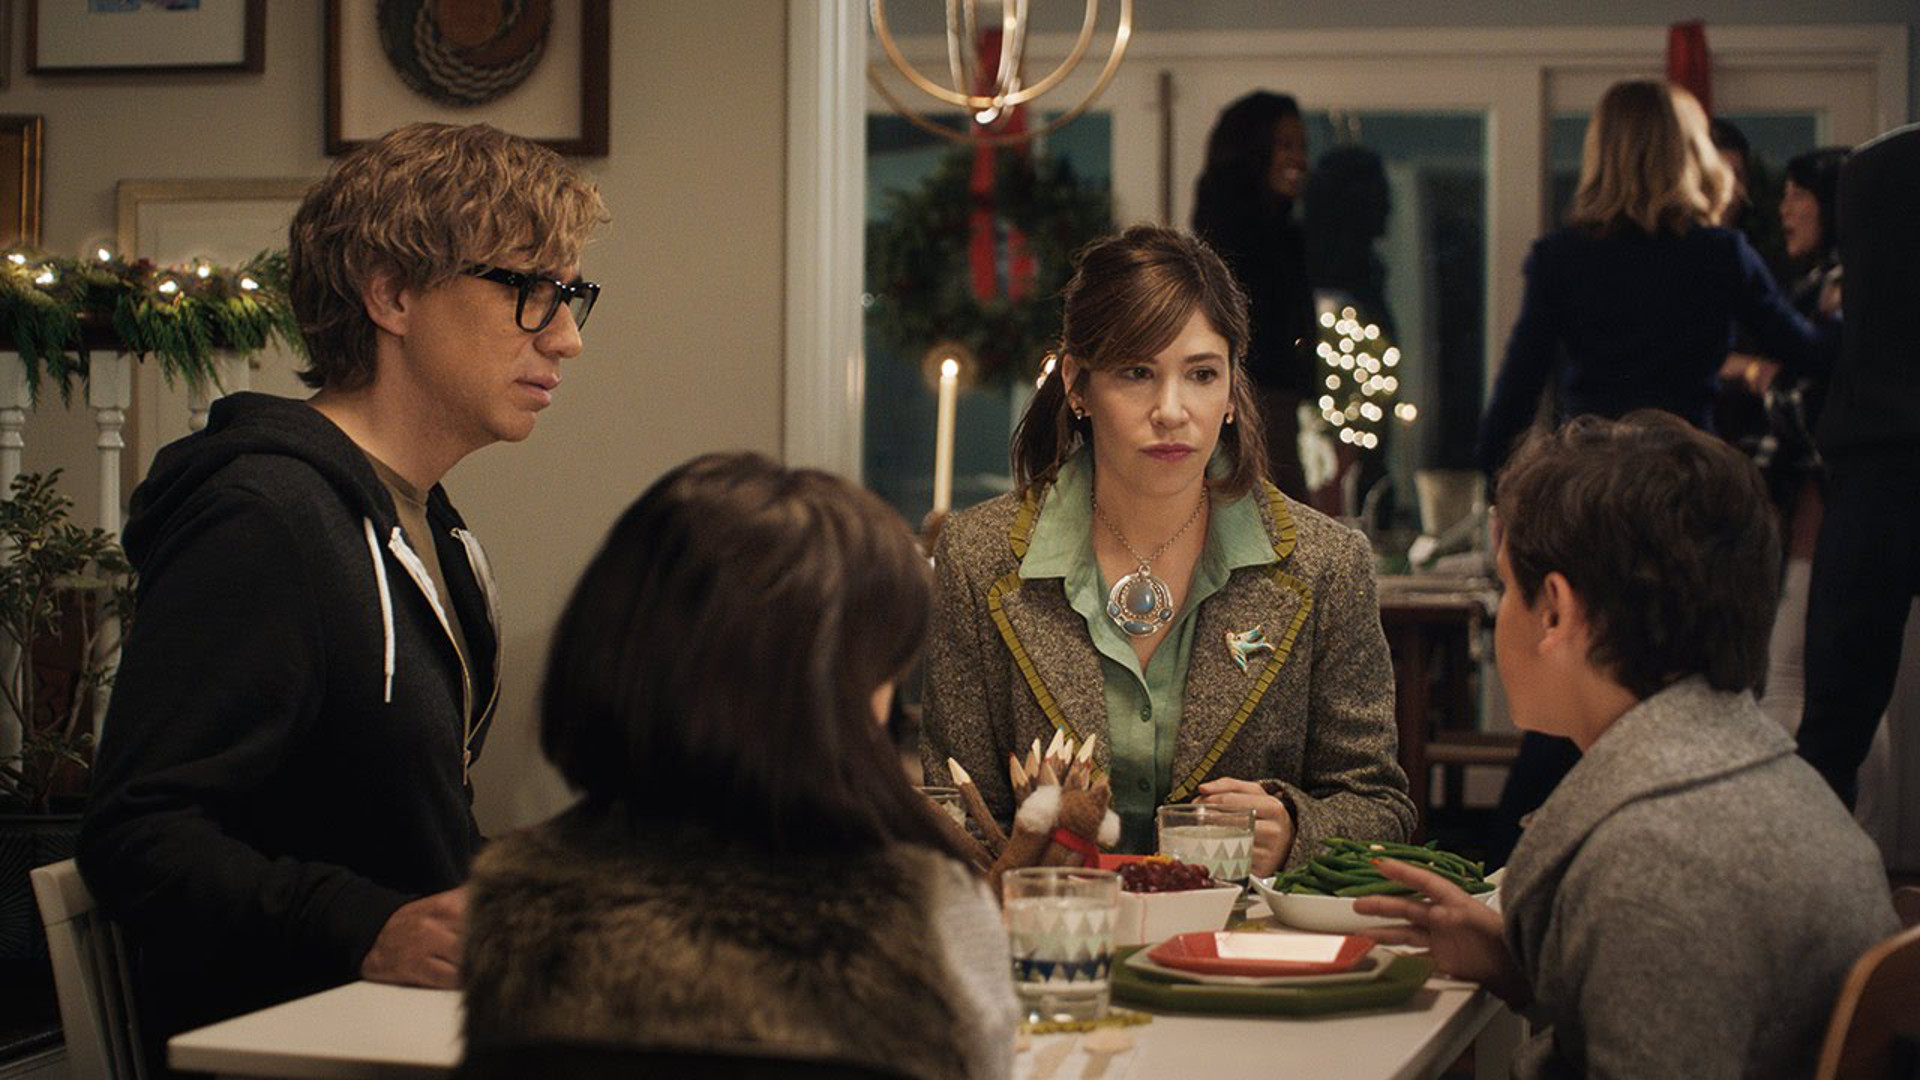 watch fred and carrie ring in the holidays with old navy ifc - Old Navy Christmas Commercial